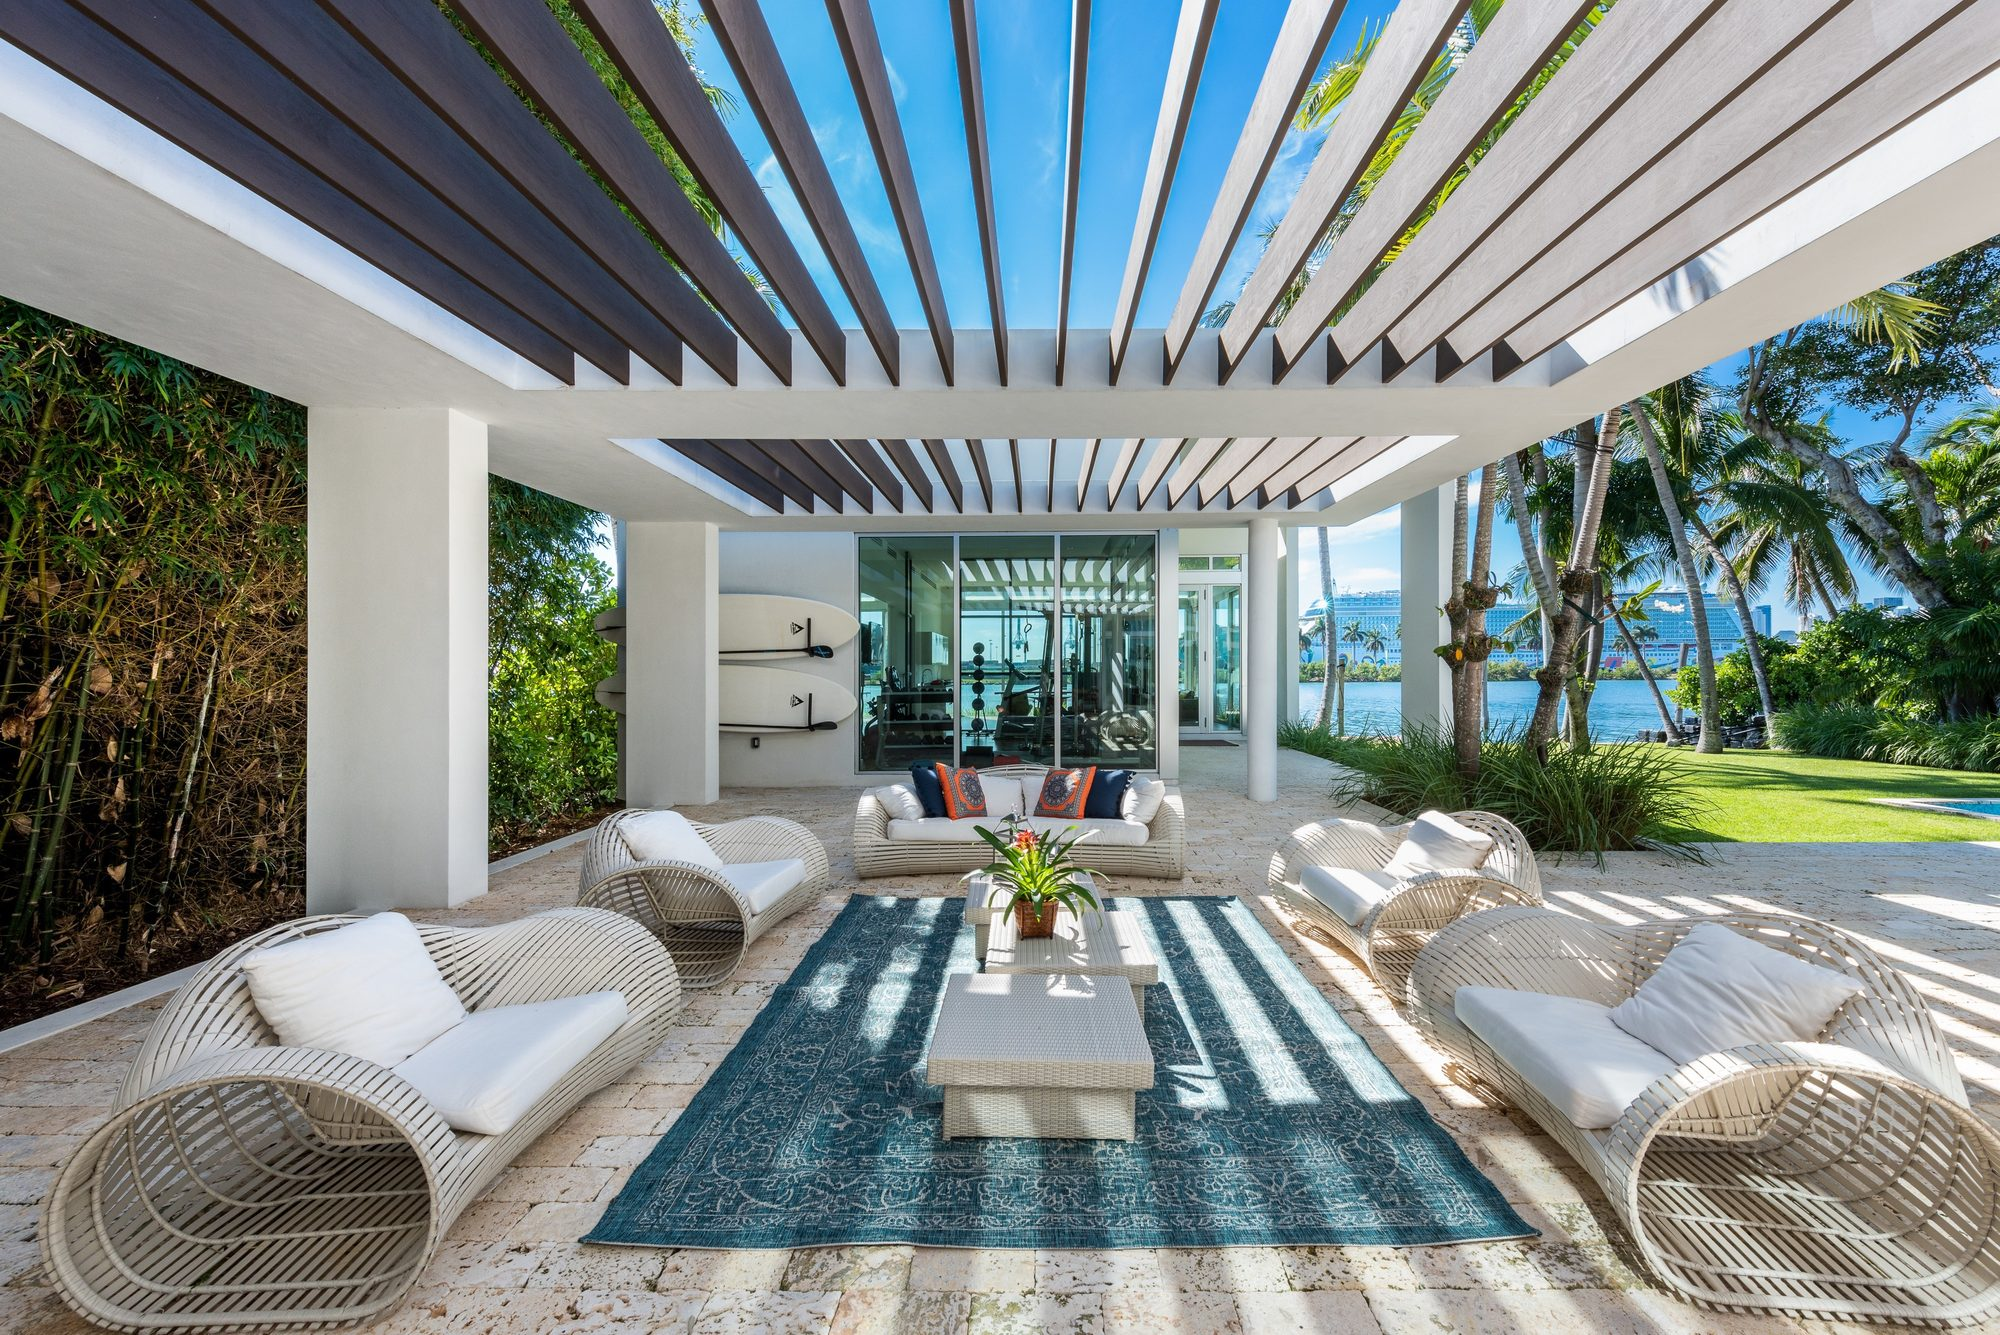 modern outdoor furniture ideas cool chairs with hollow sides white cushions colorful throw pillows blue area rug